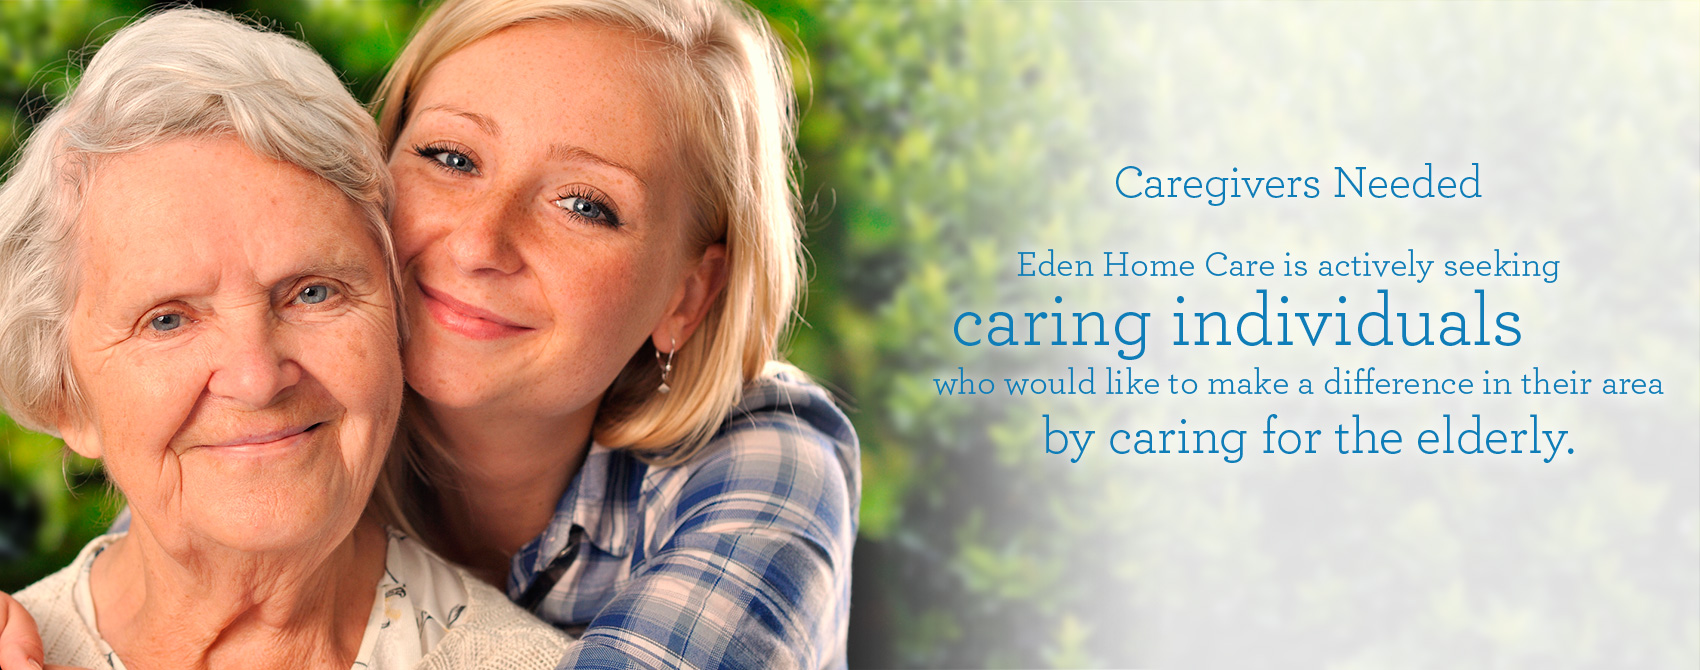 Caregivers needed banner